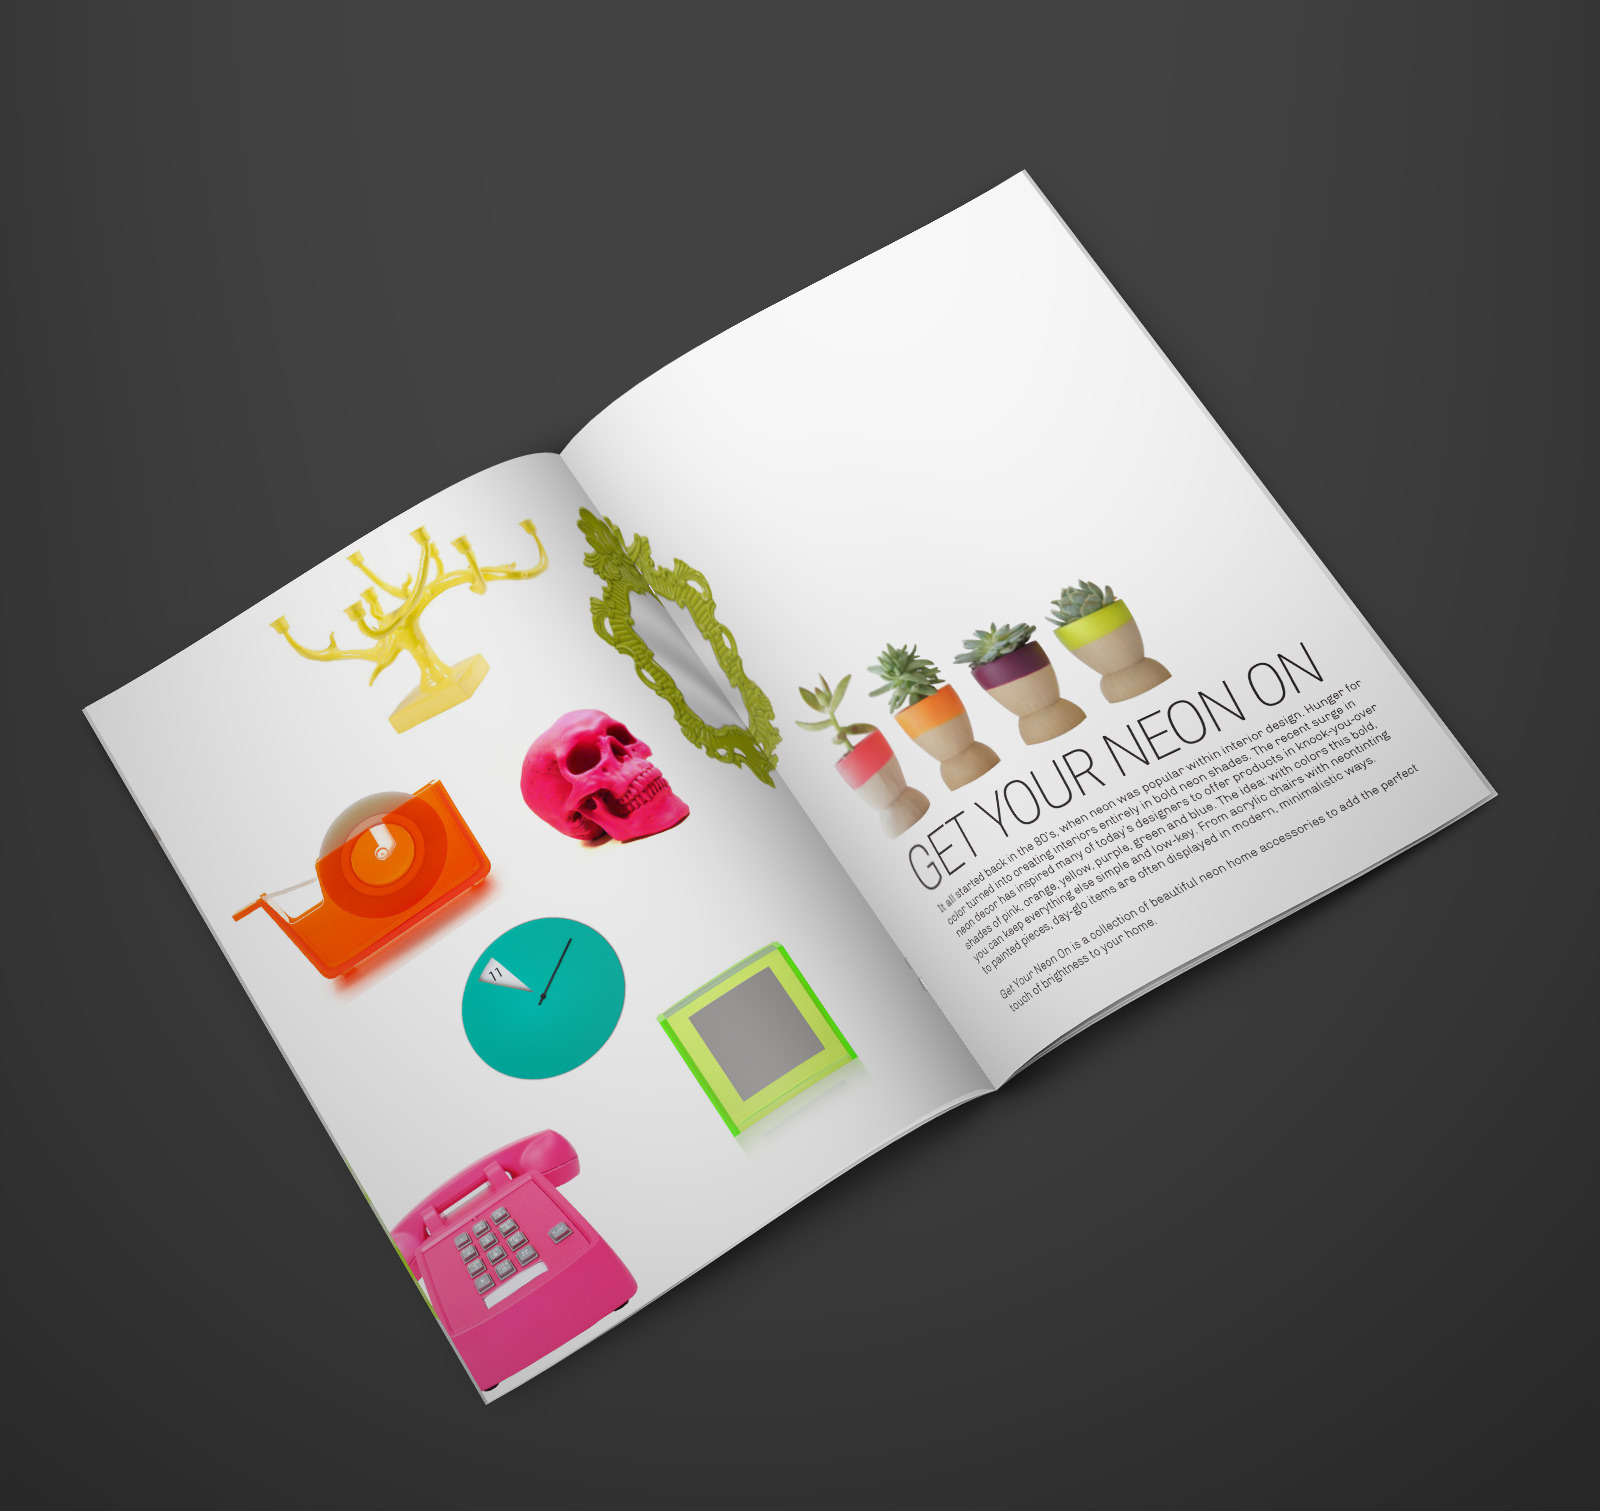 kambree bakaitis get your neon on is a fictional home decor catalog specializing in bright and colorful home decor organized by color this catalog helps buyers add a